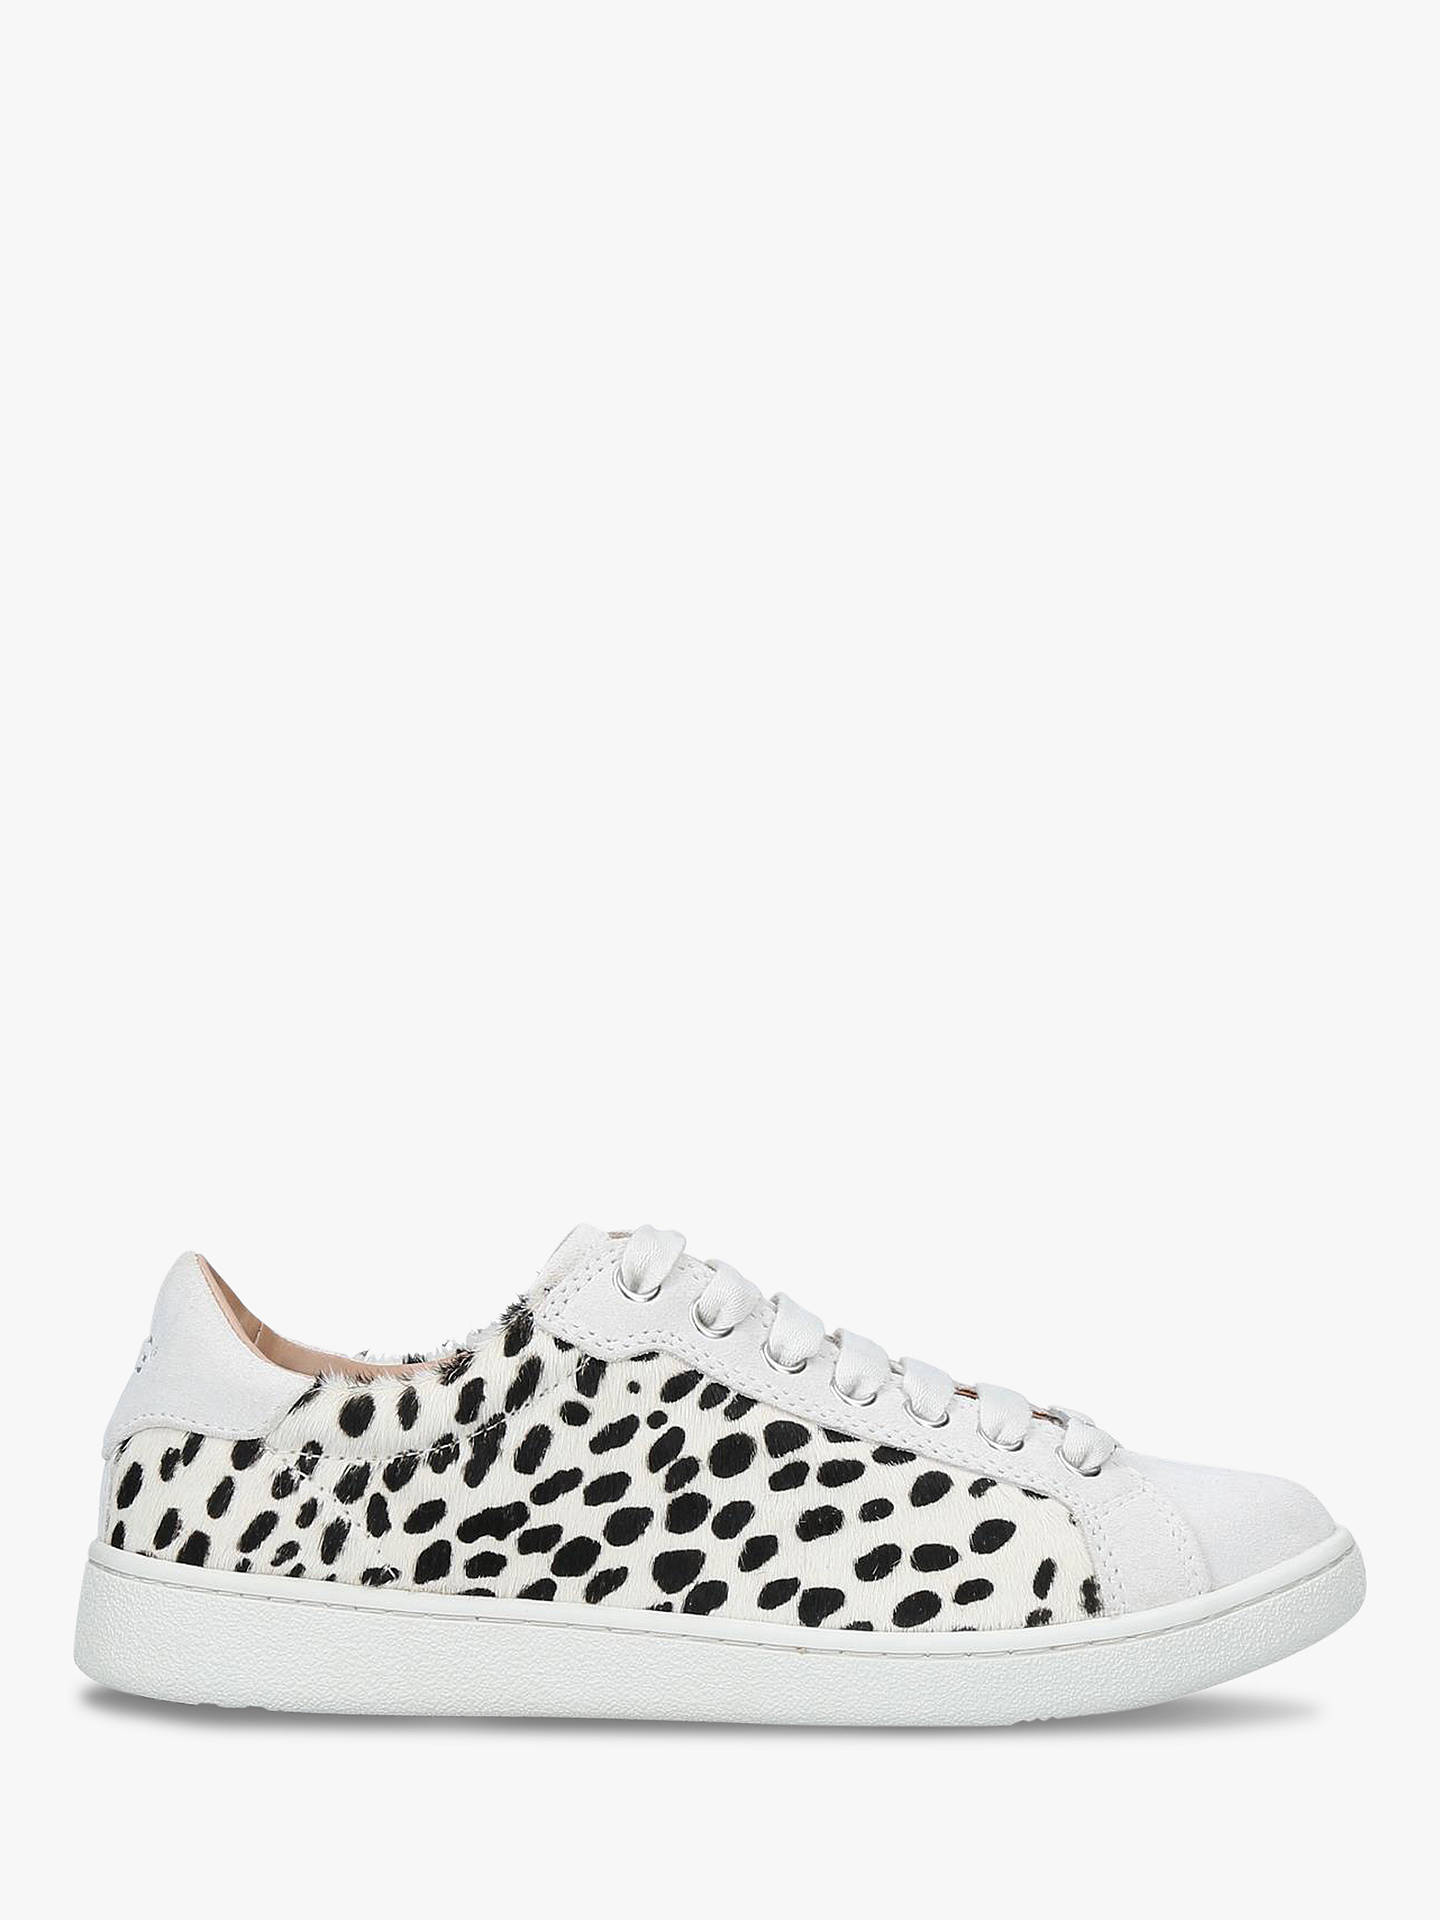 b844c10d46e UGG Milo Exotic Lace Up Trainers, White/Black Suede at John Lewis ...